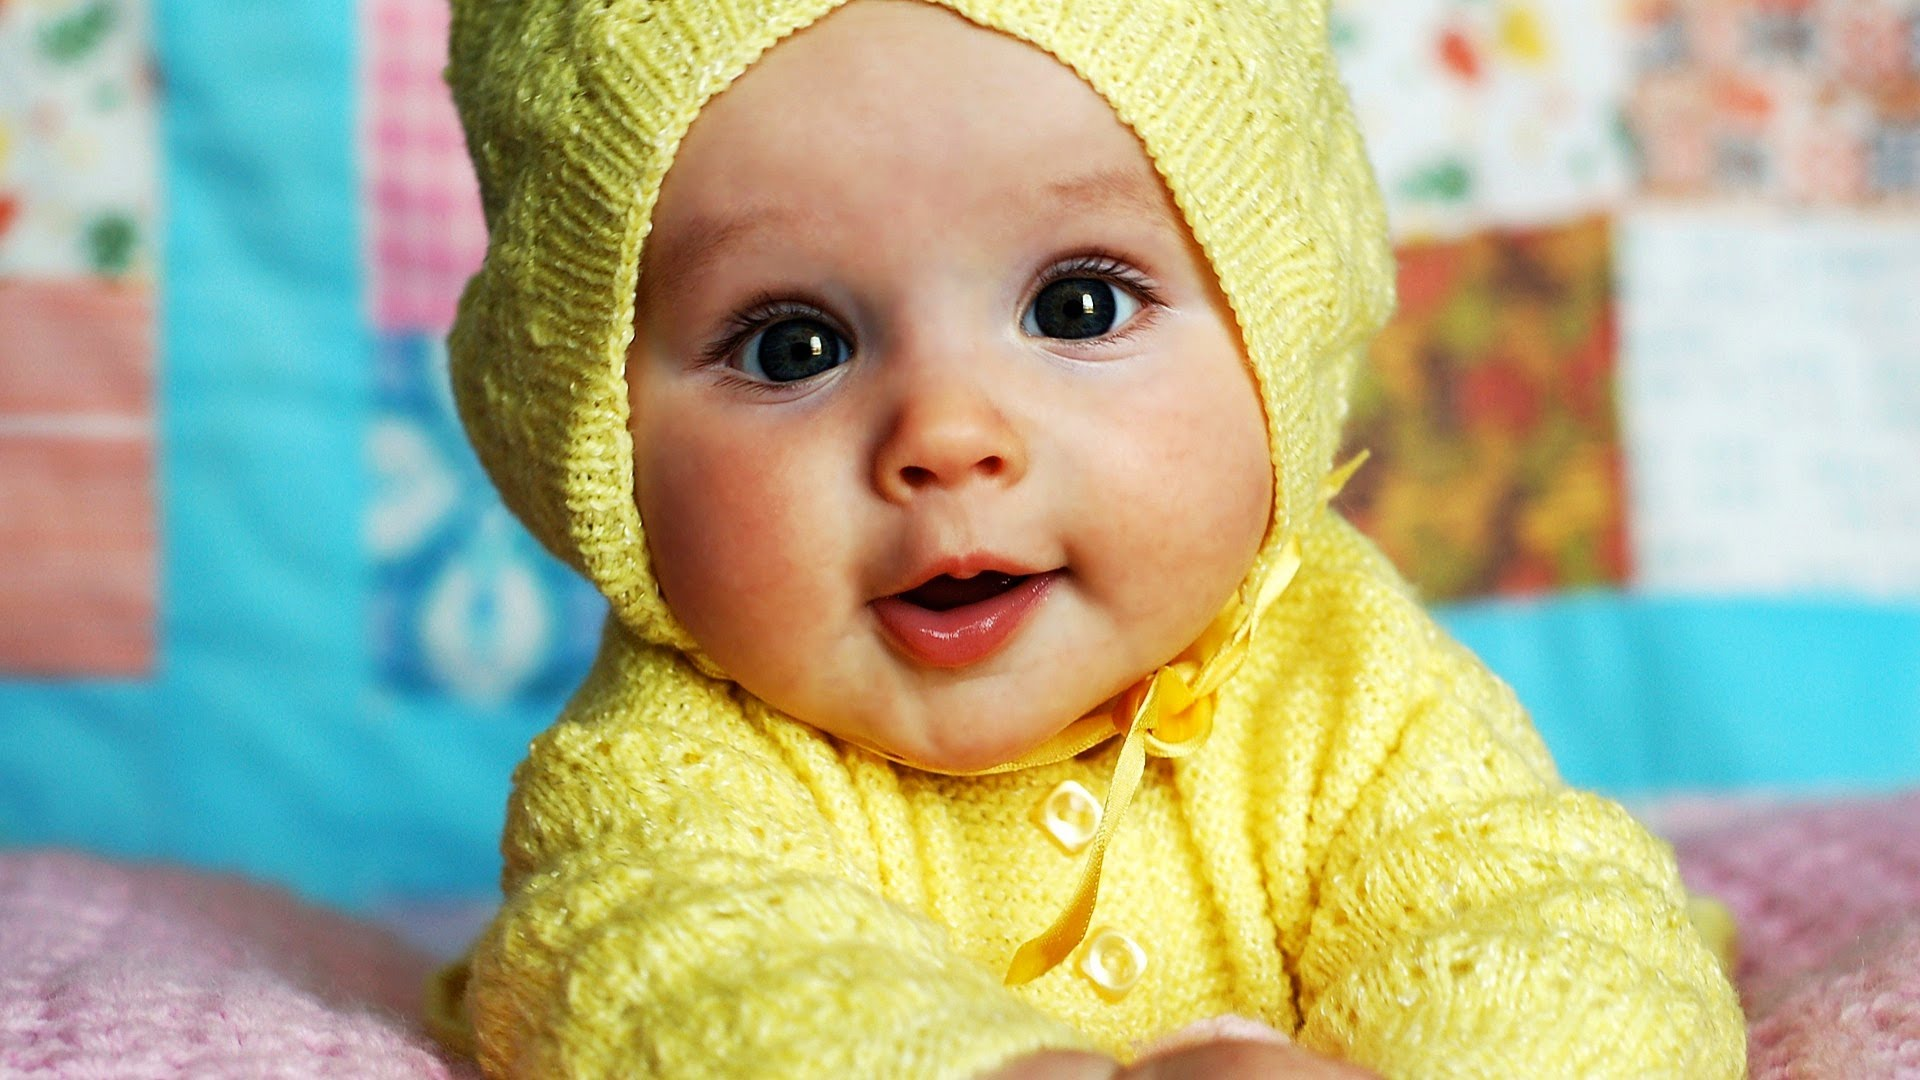 Free Download Cute Baby Boy Pictures Hd Wallpapers Download 1920x1080 For Your Desktop Mobile Tablet Explore 47 Baby Boy Images Wallpapers Baby Boy Wallpaper Wallpaper For Baby Cute Baby